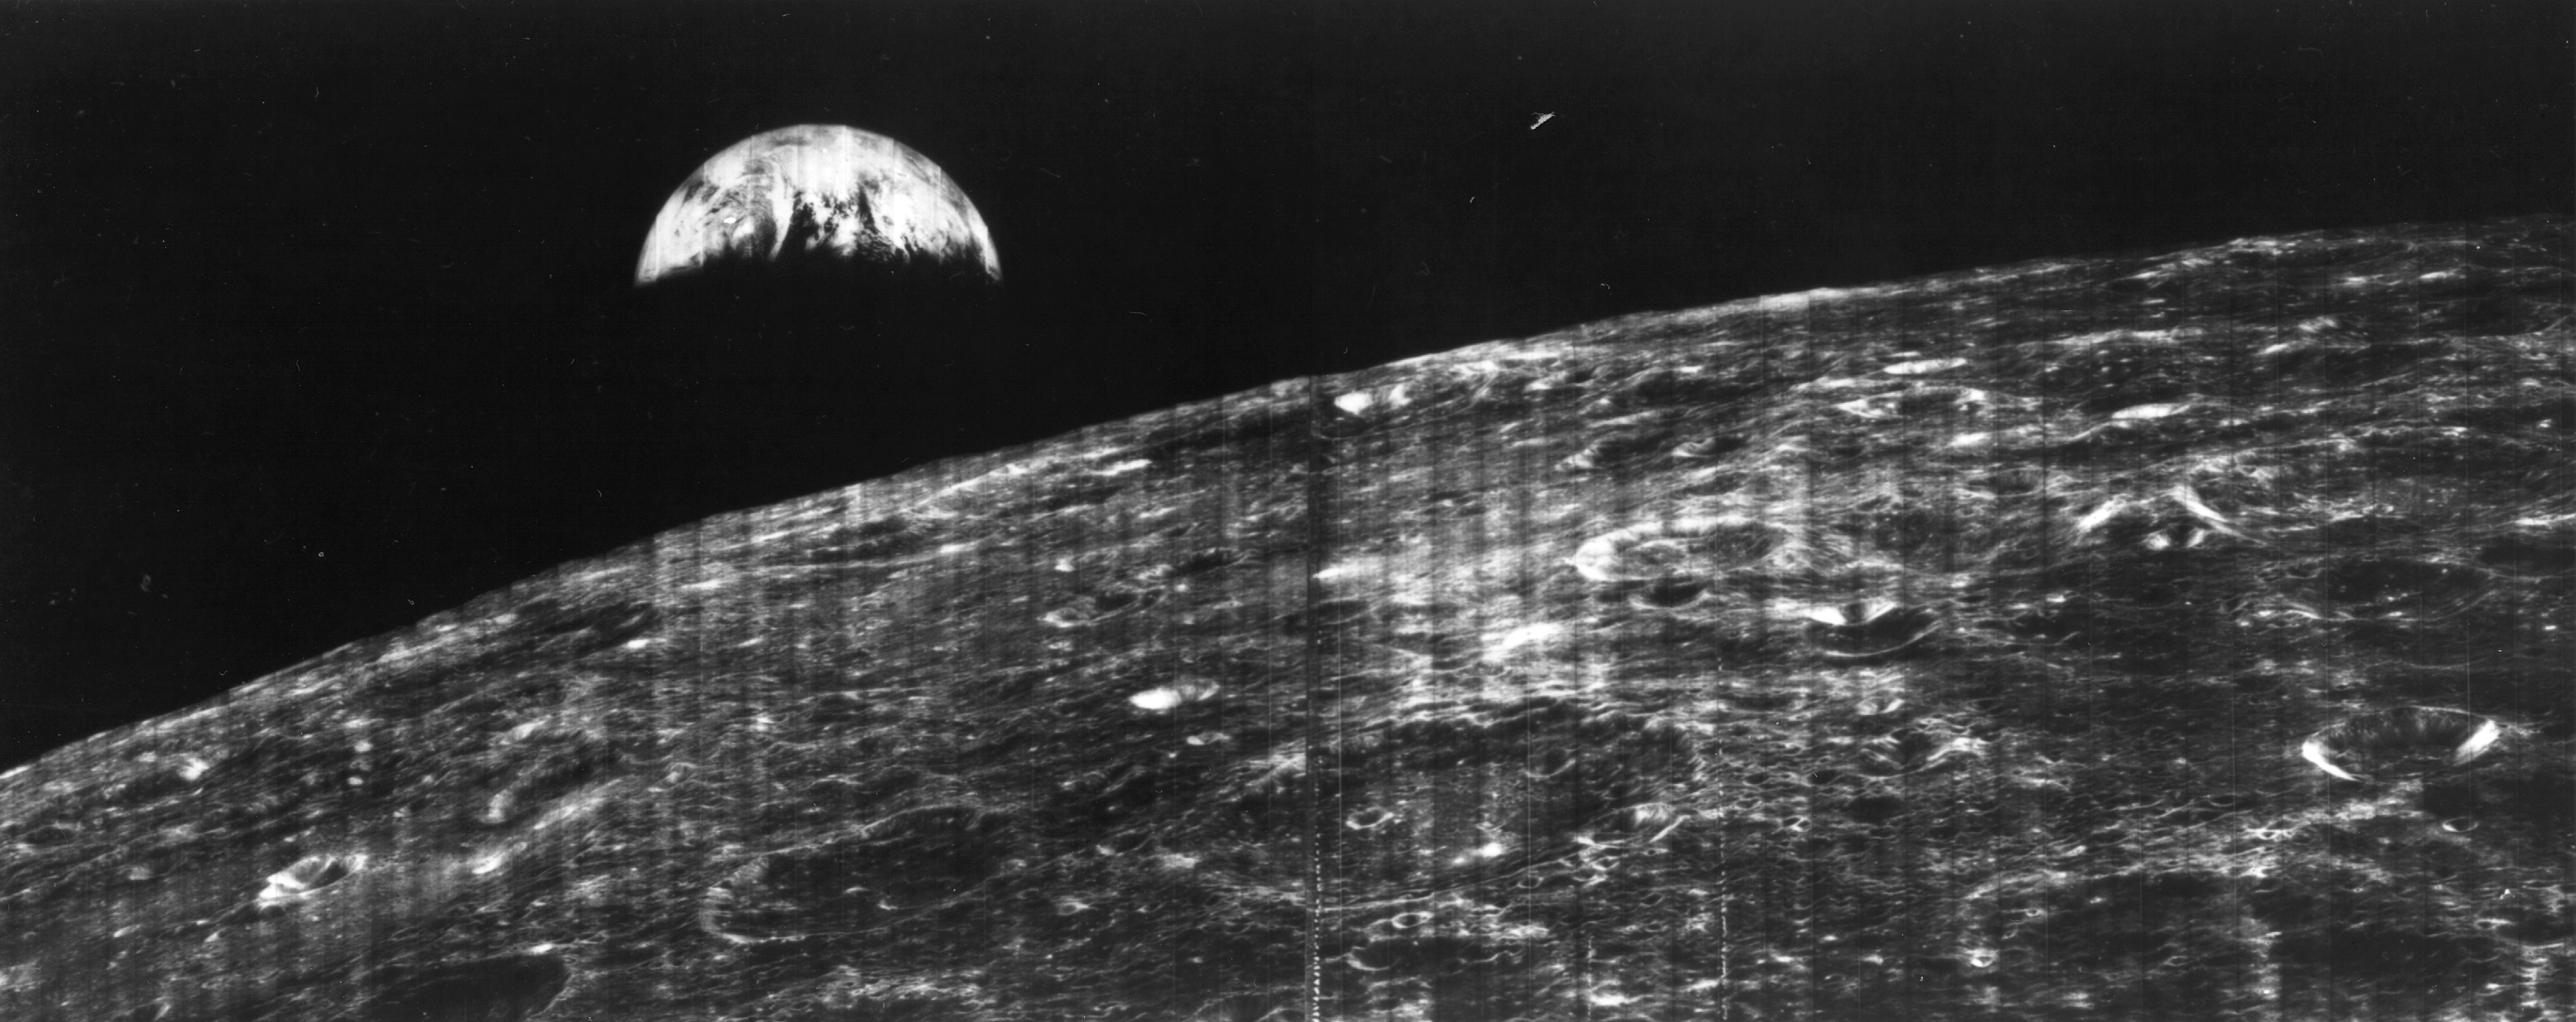 earth from the moon nasa - photo #30